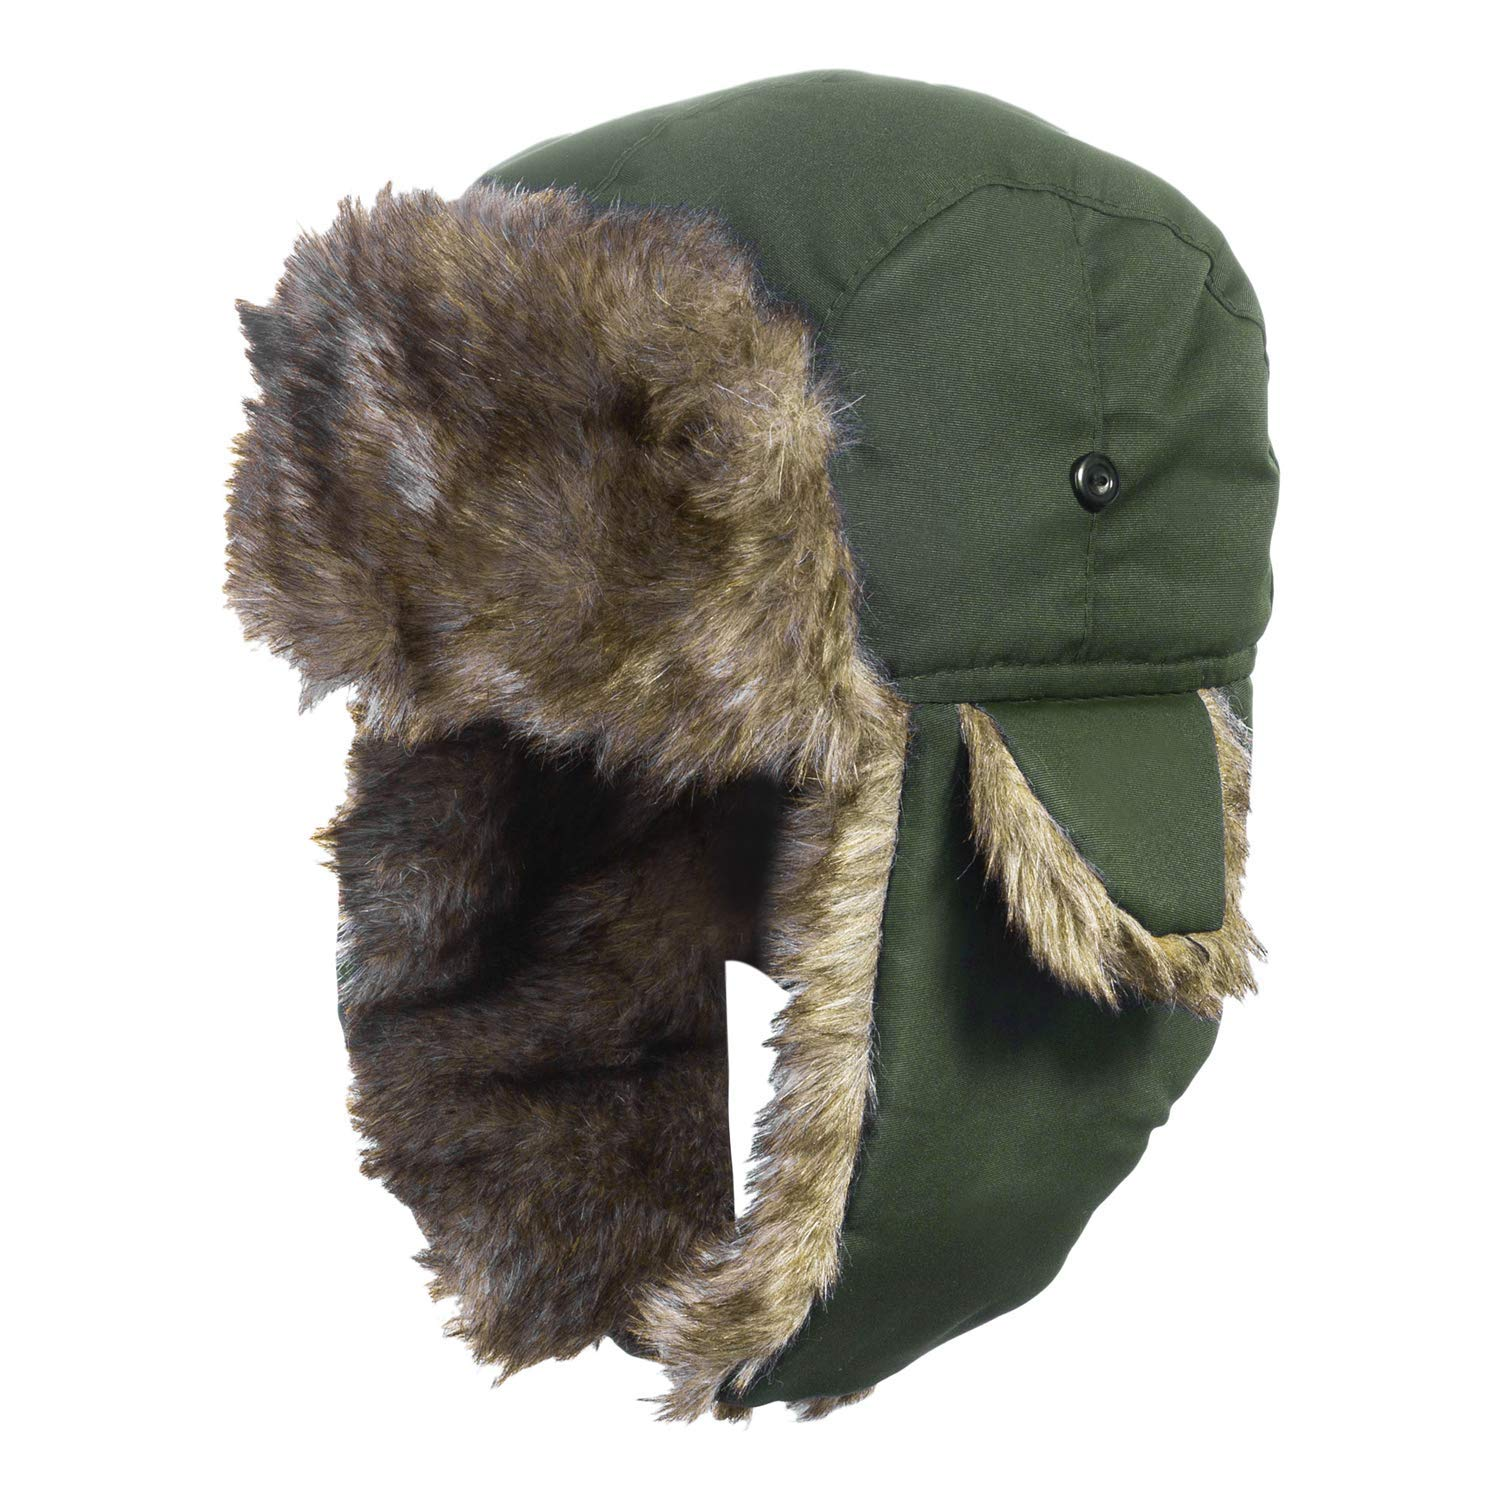 8f769682729 Get Quotations · DYAPP Men s Unisex Trooper Hunting Hats with Ear Flaps